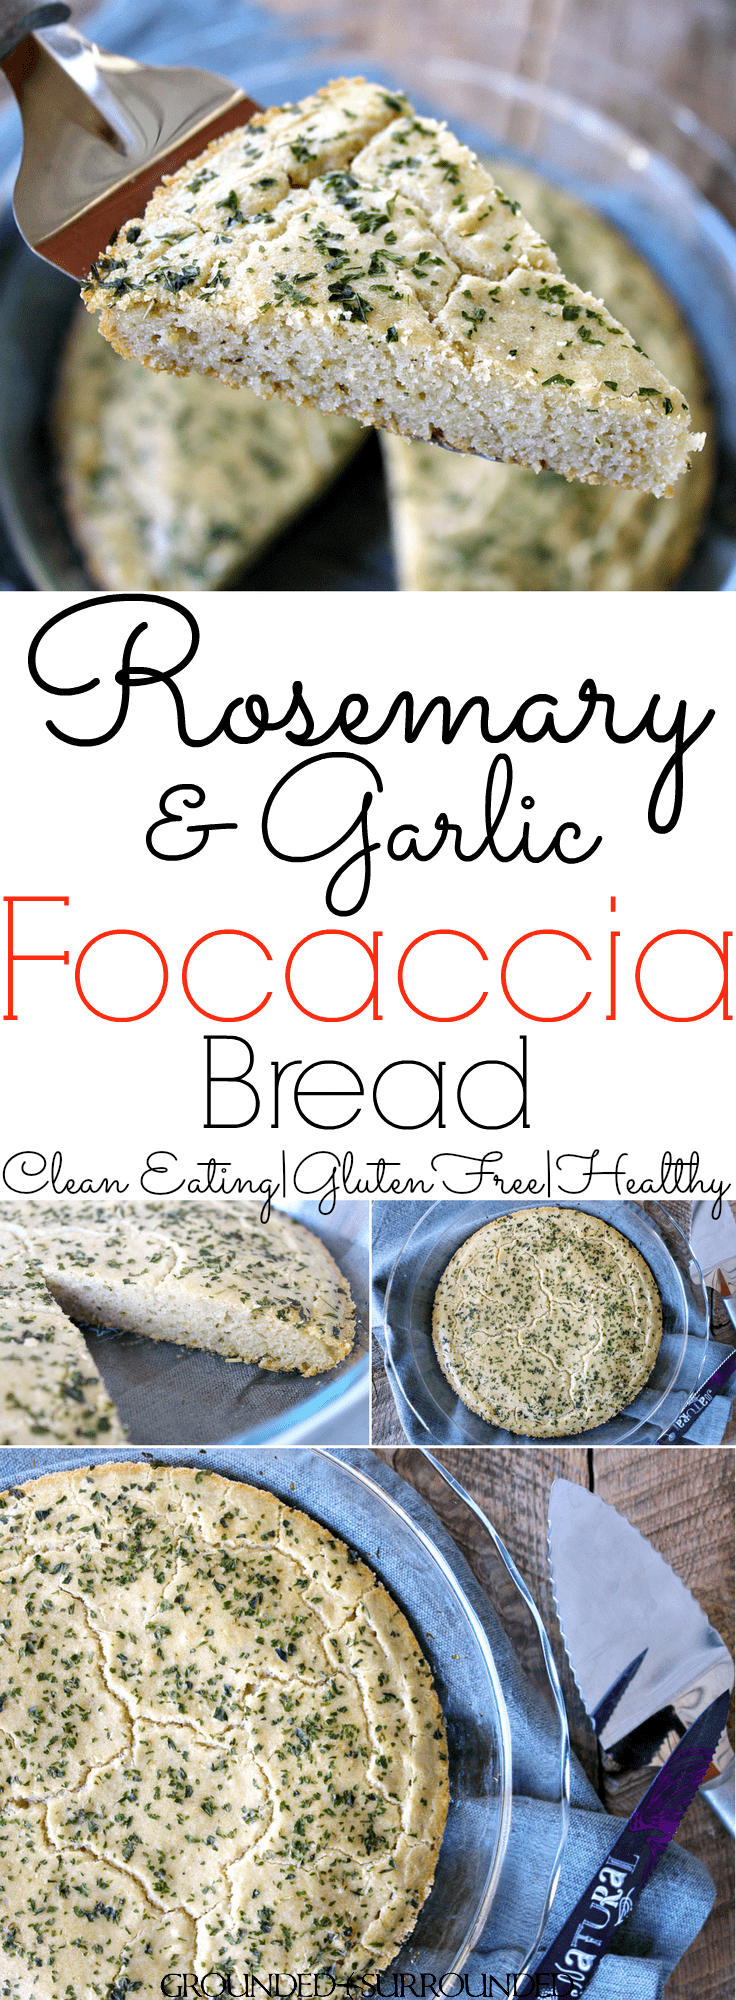 The BEST Gluten Free Focaccia Bread | This healthy and easy recipe is perfect alongside a soup or as an appetizer dipped in olive oil! The addition of rosemary and garlic make this delicious side dish a keeper. It isn't easy to find homemade and clean eating in a bread, but this one delivers! The tapioca flour, coconut flour, and eggs make this a low carb option as well as grain and dairy free.